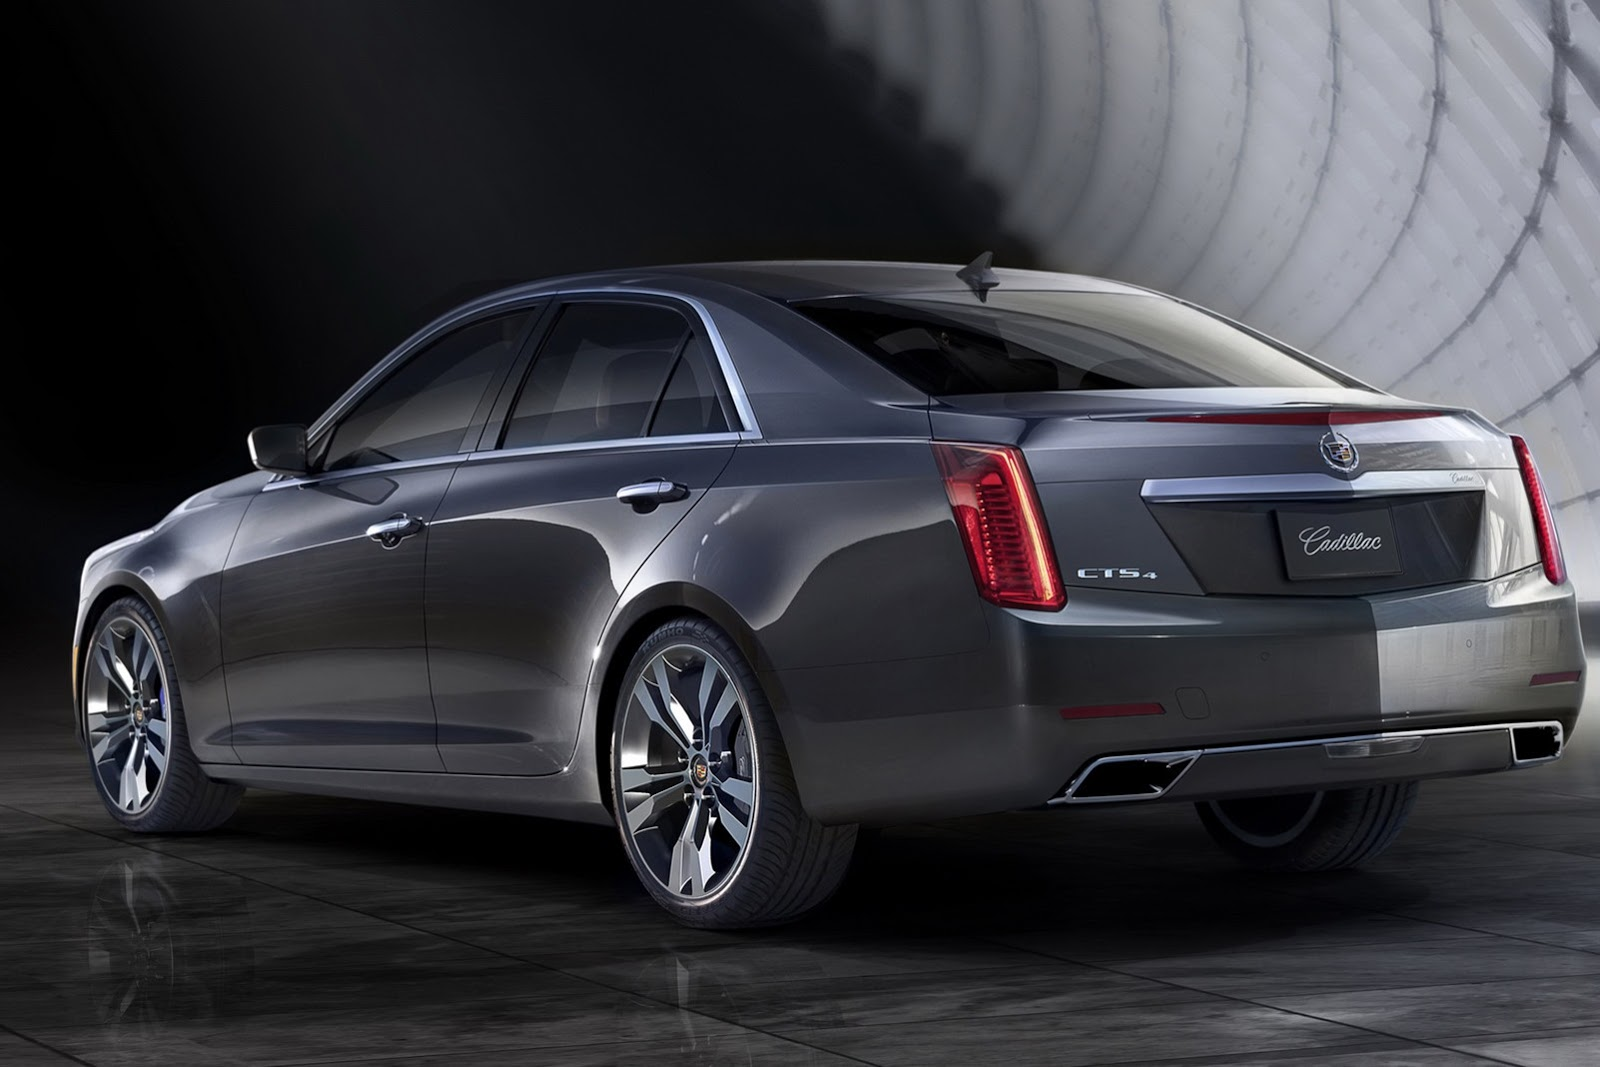 2014 Cadillac Cts Revealed In New York Autoevolution